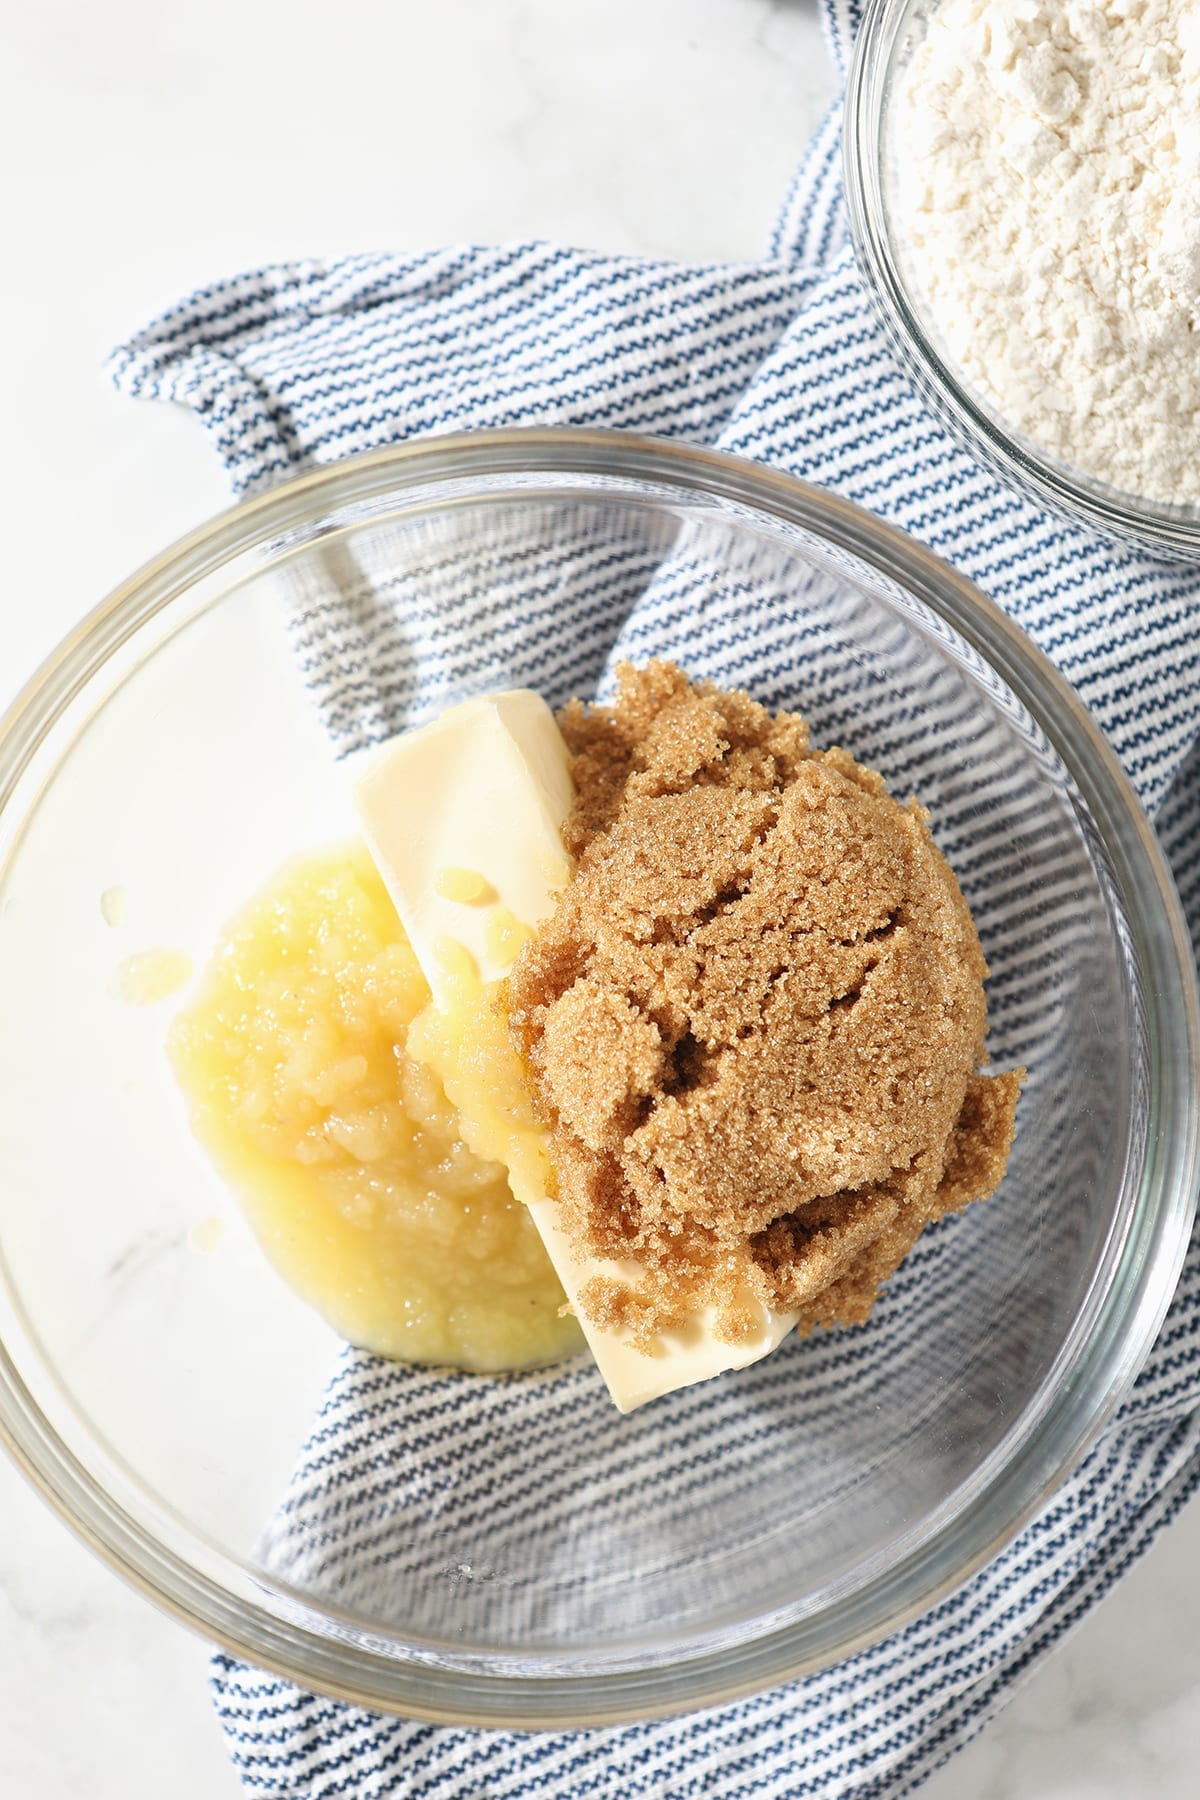 Butter, applesauce and brown sugar in a clear glass bowl on a blue striped towel